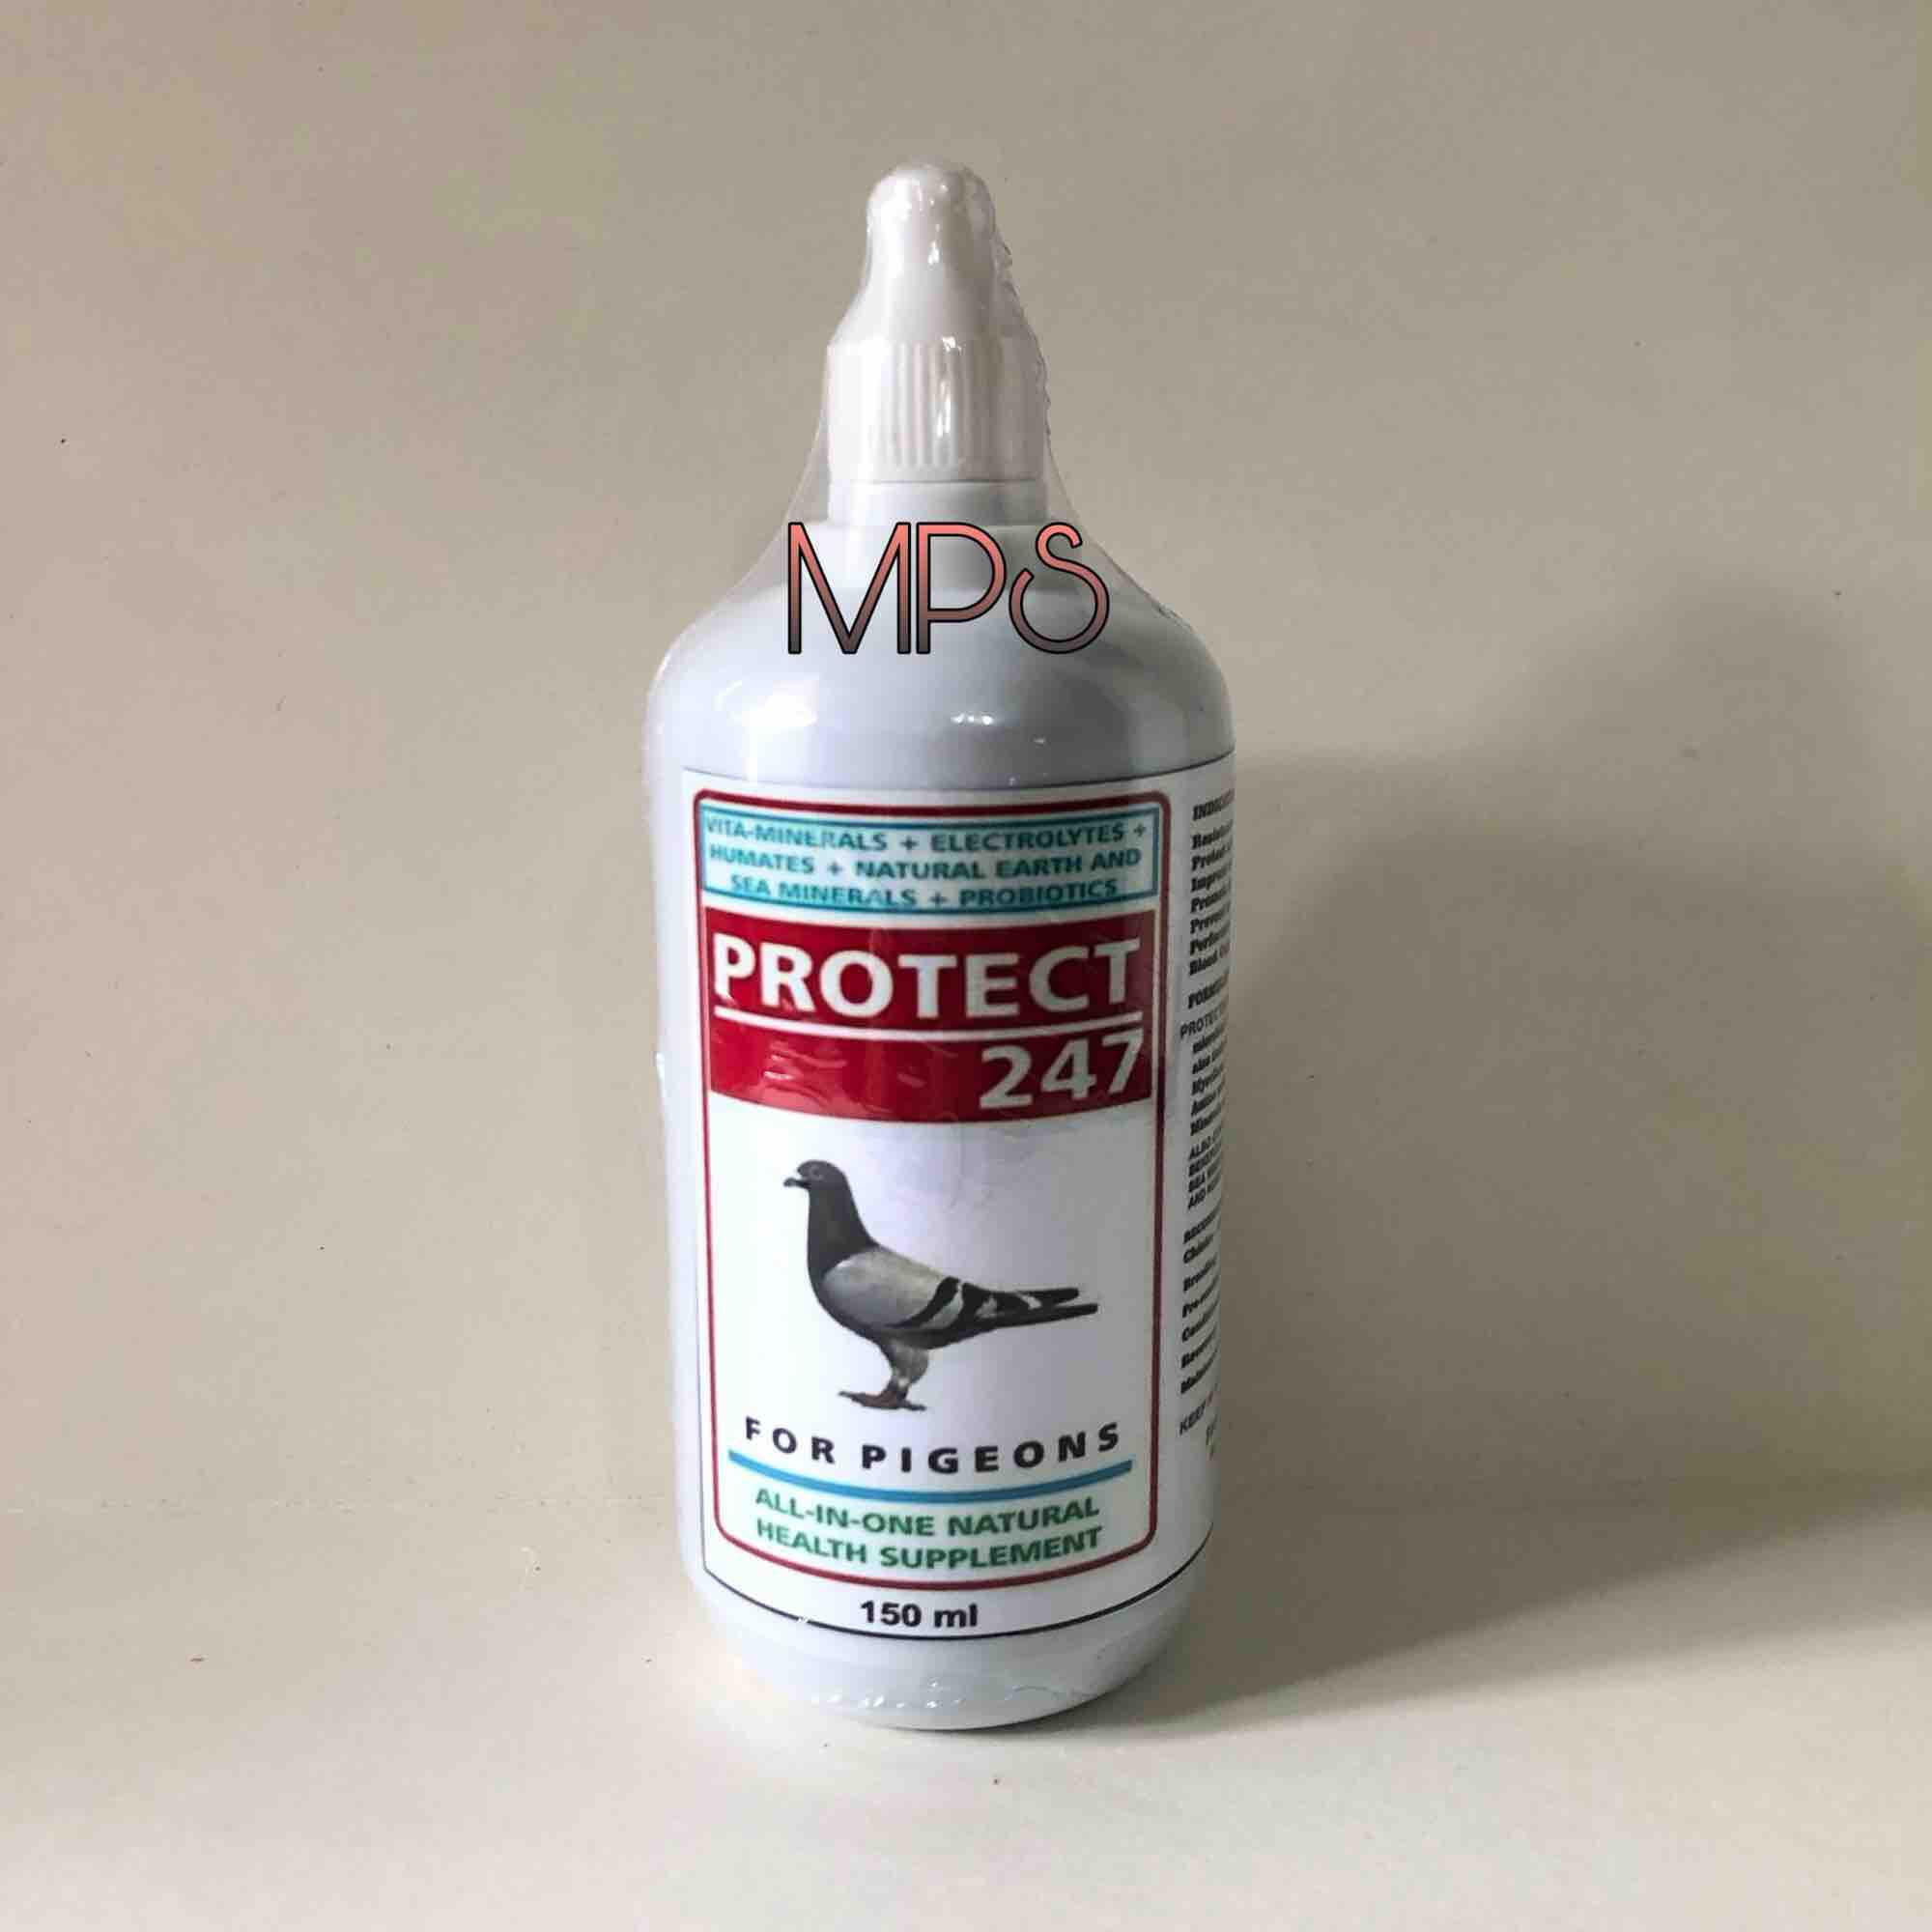 Protect 247 (150ml) for pigeons